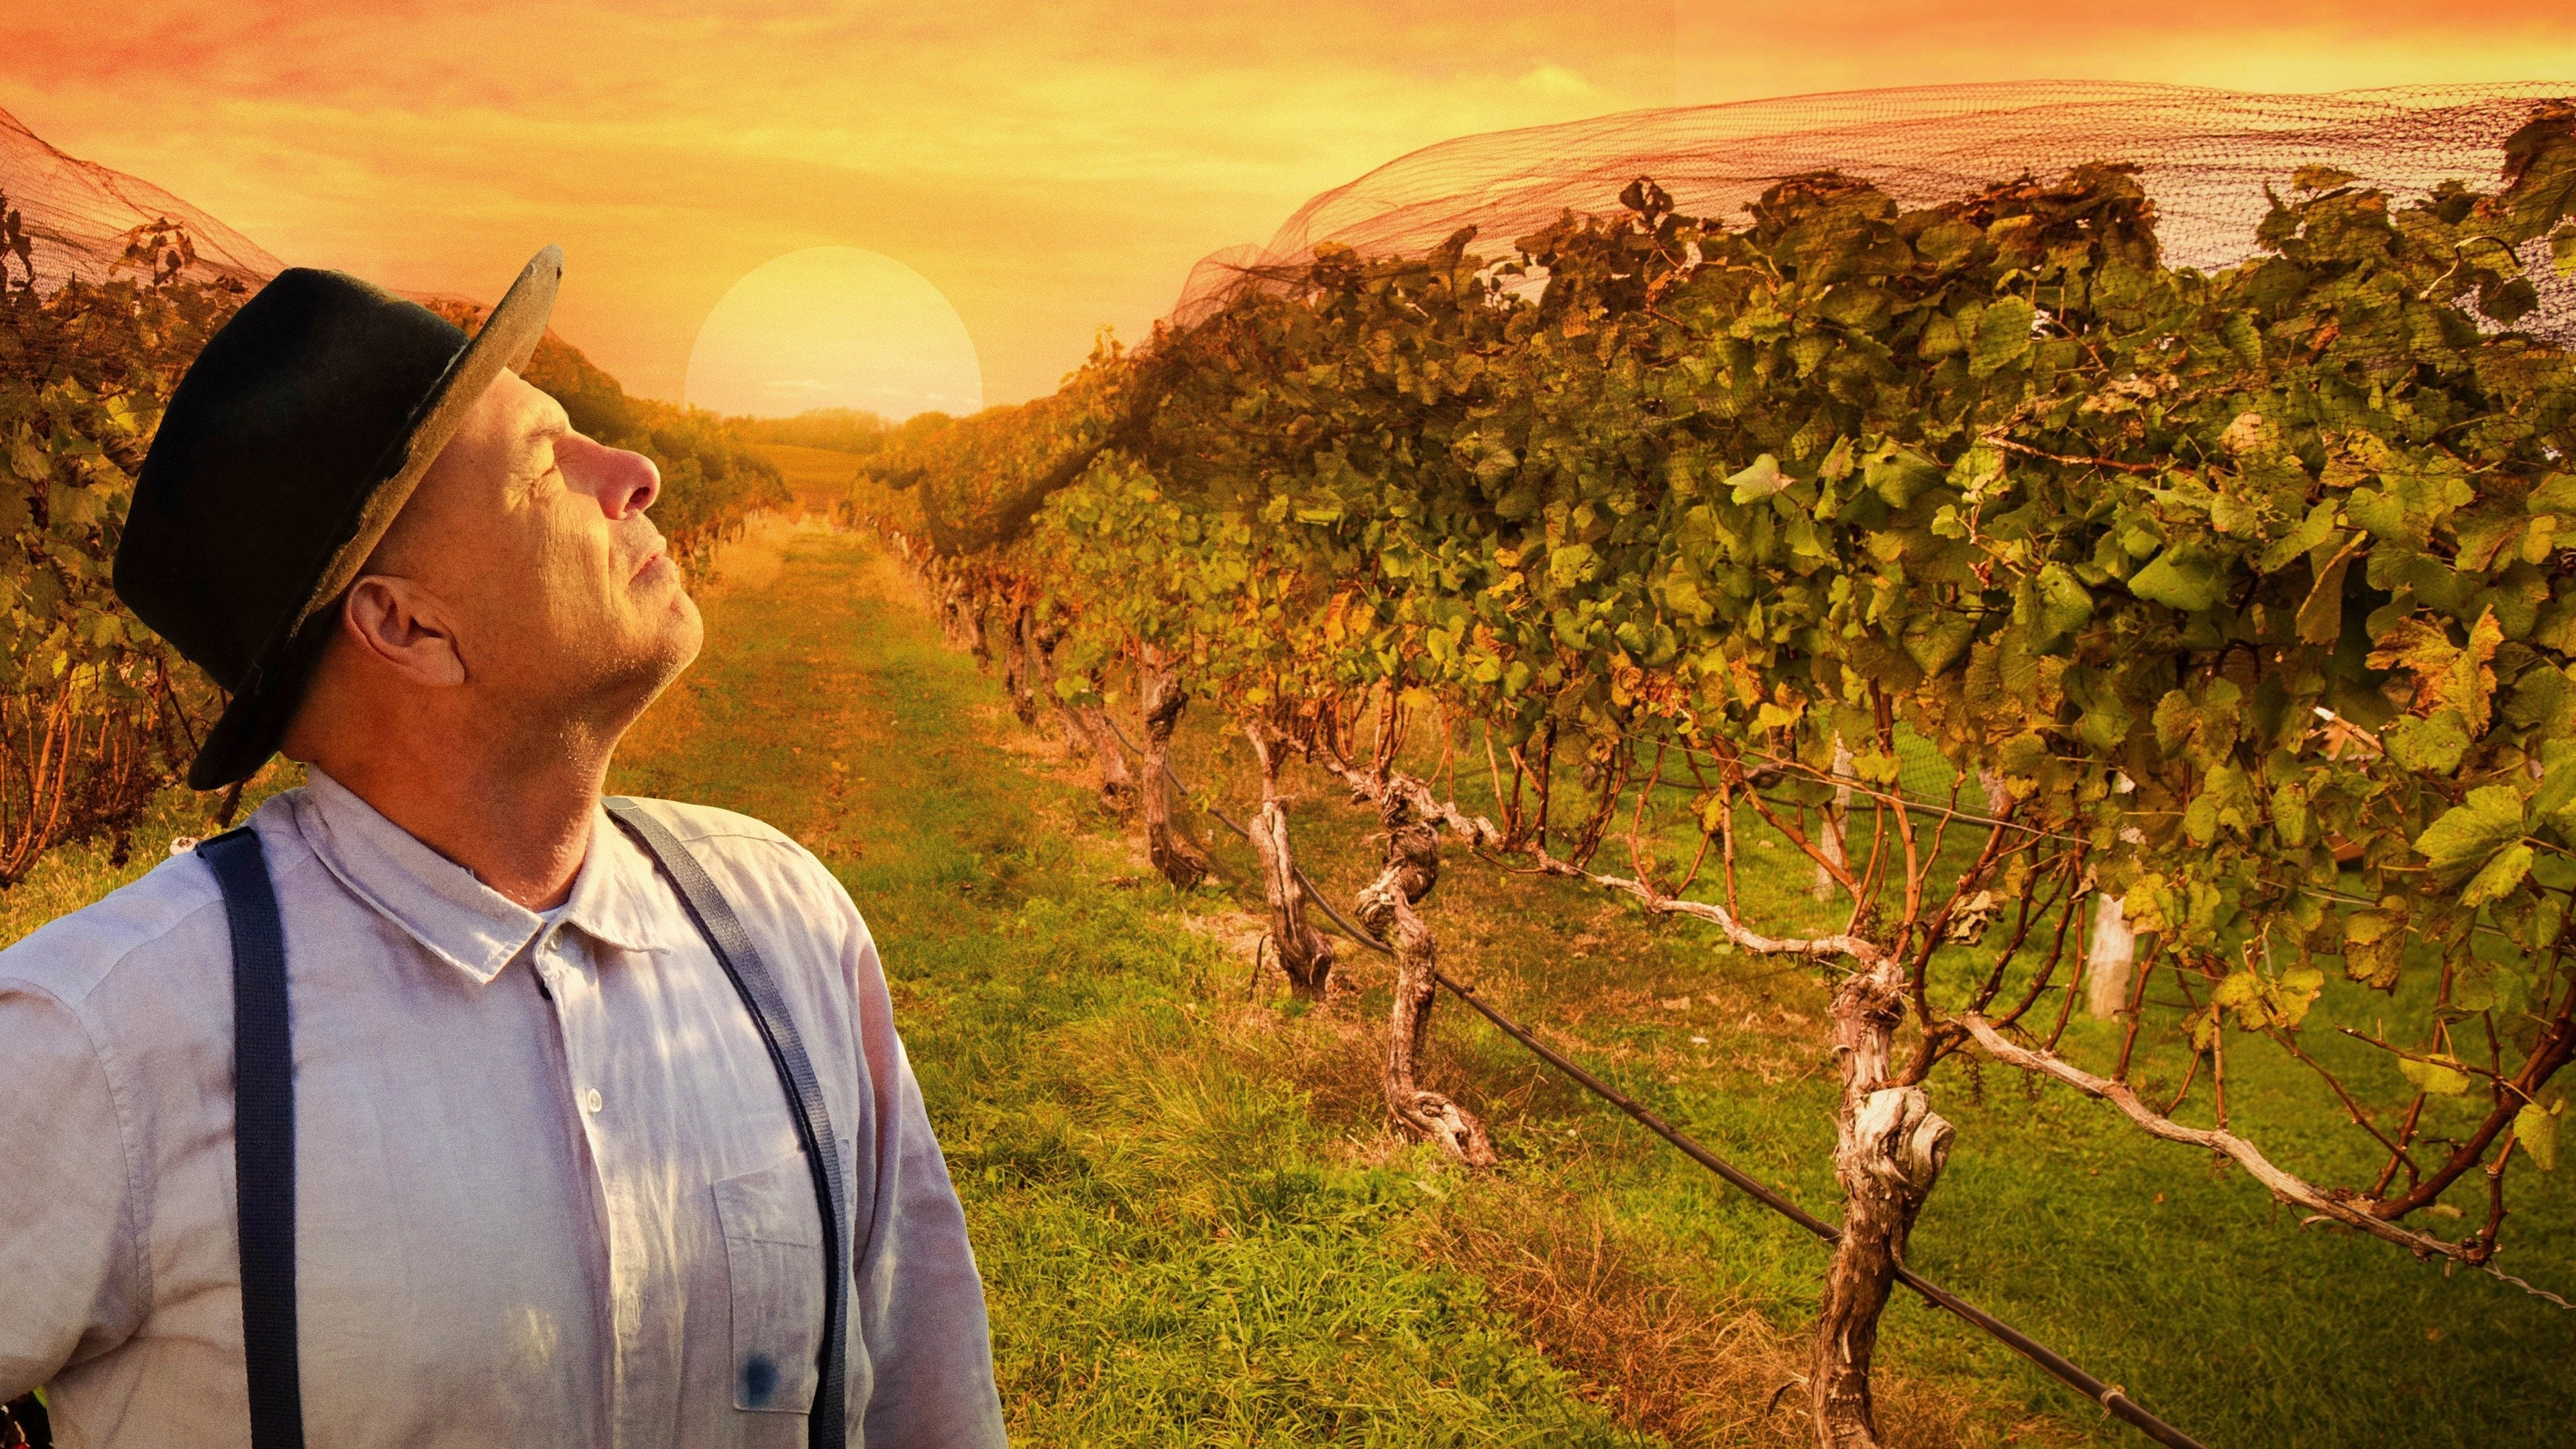 [Film review] From the Vine